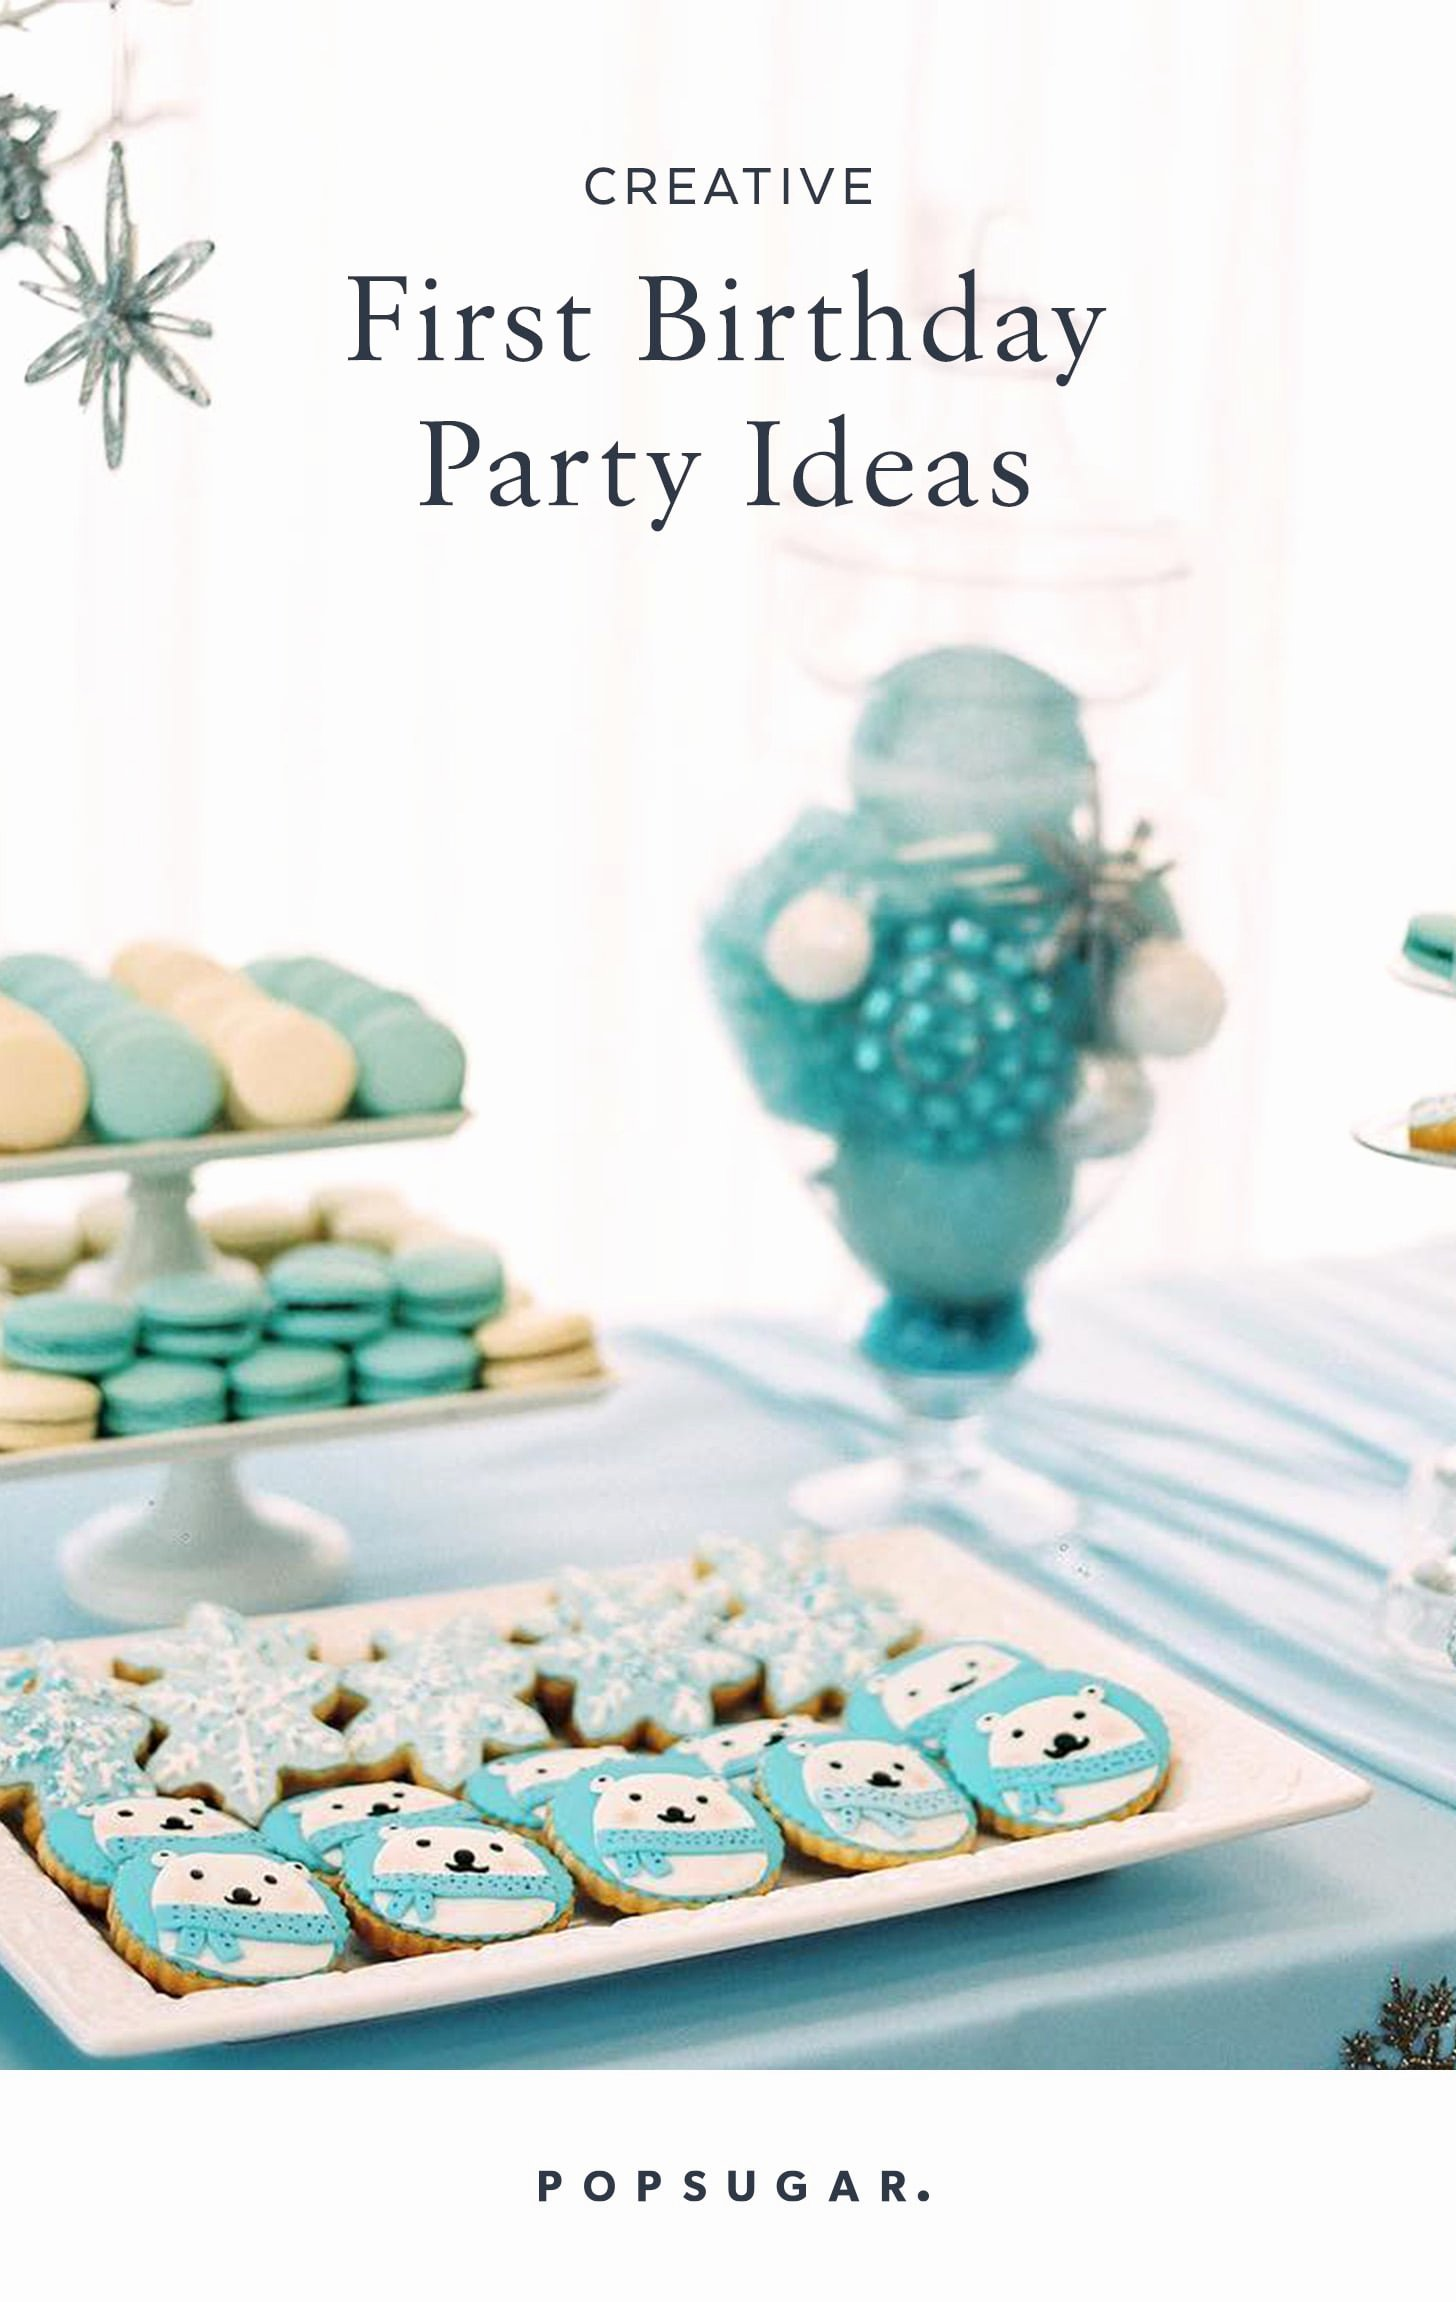 Baby Boy Birthday Decoration Ideas at Home Lovely Creative First Birthday Party Ideas